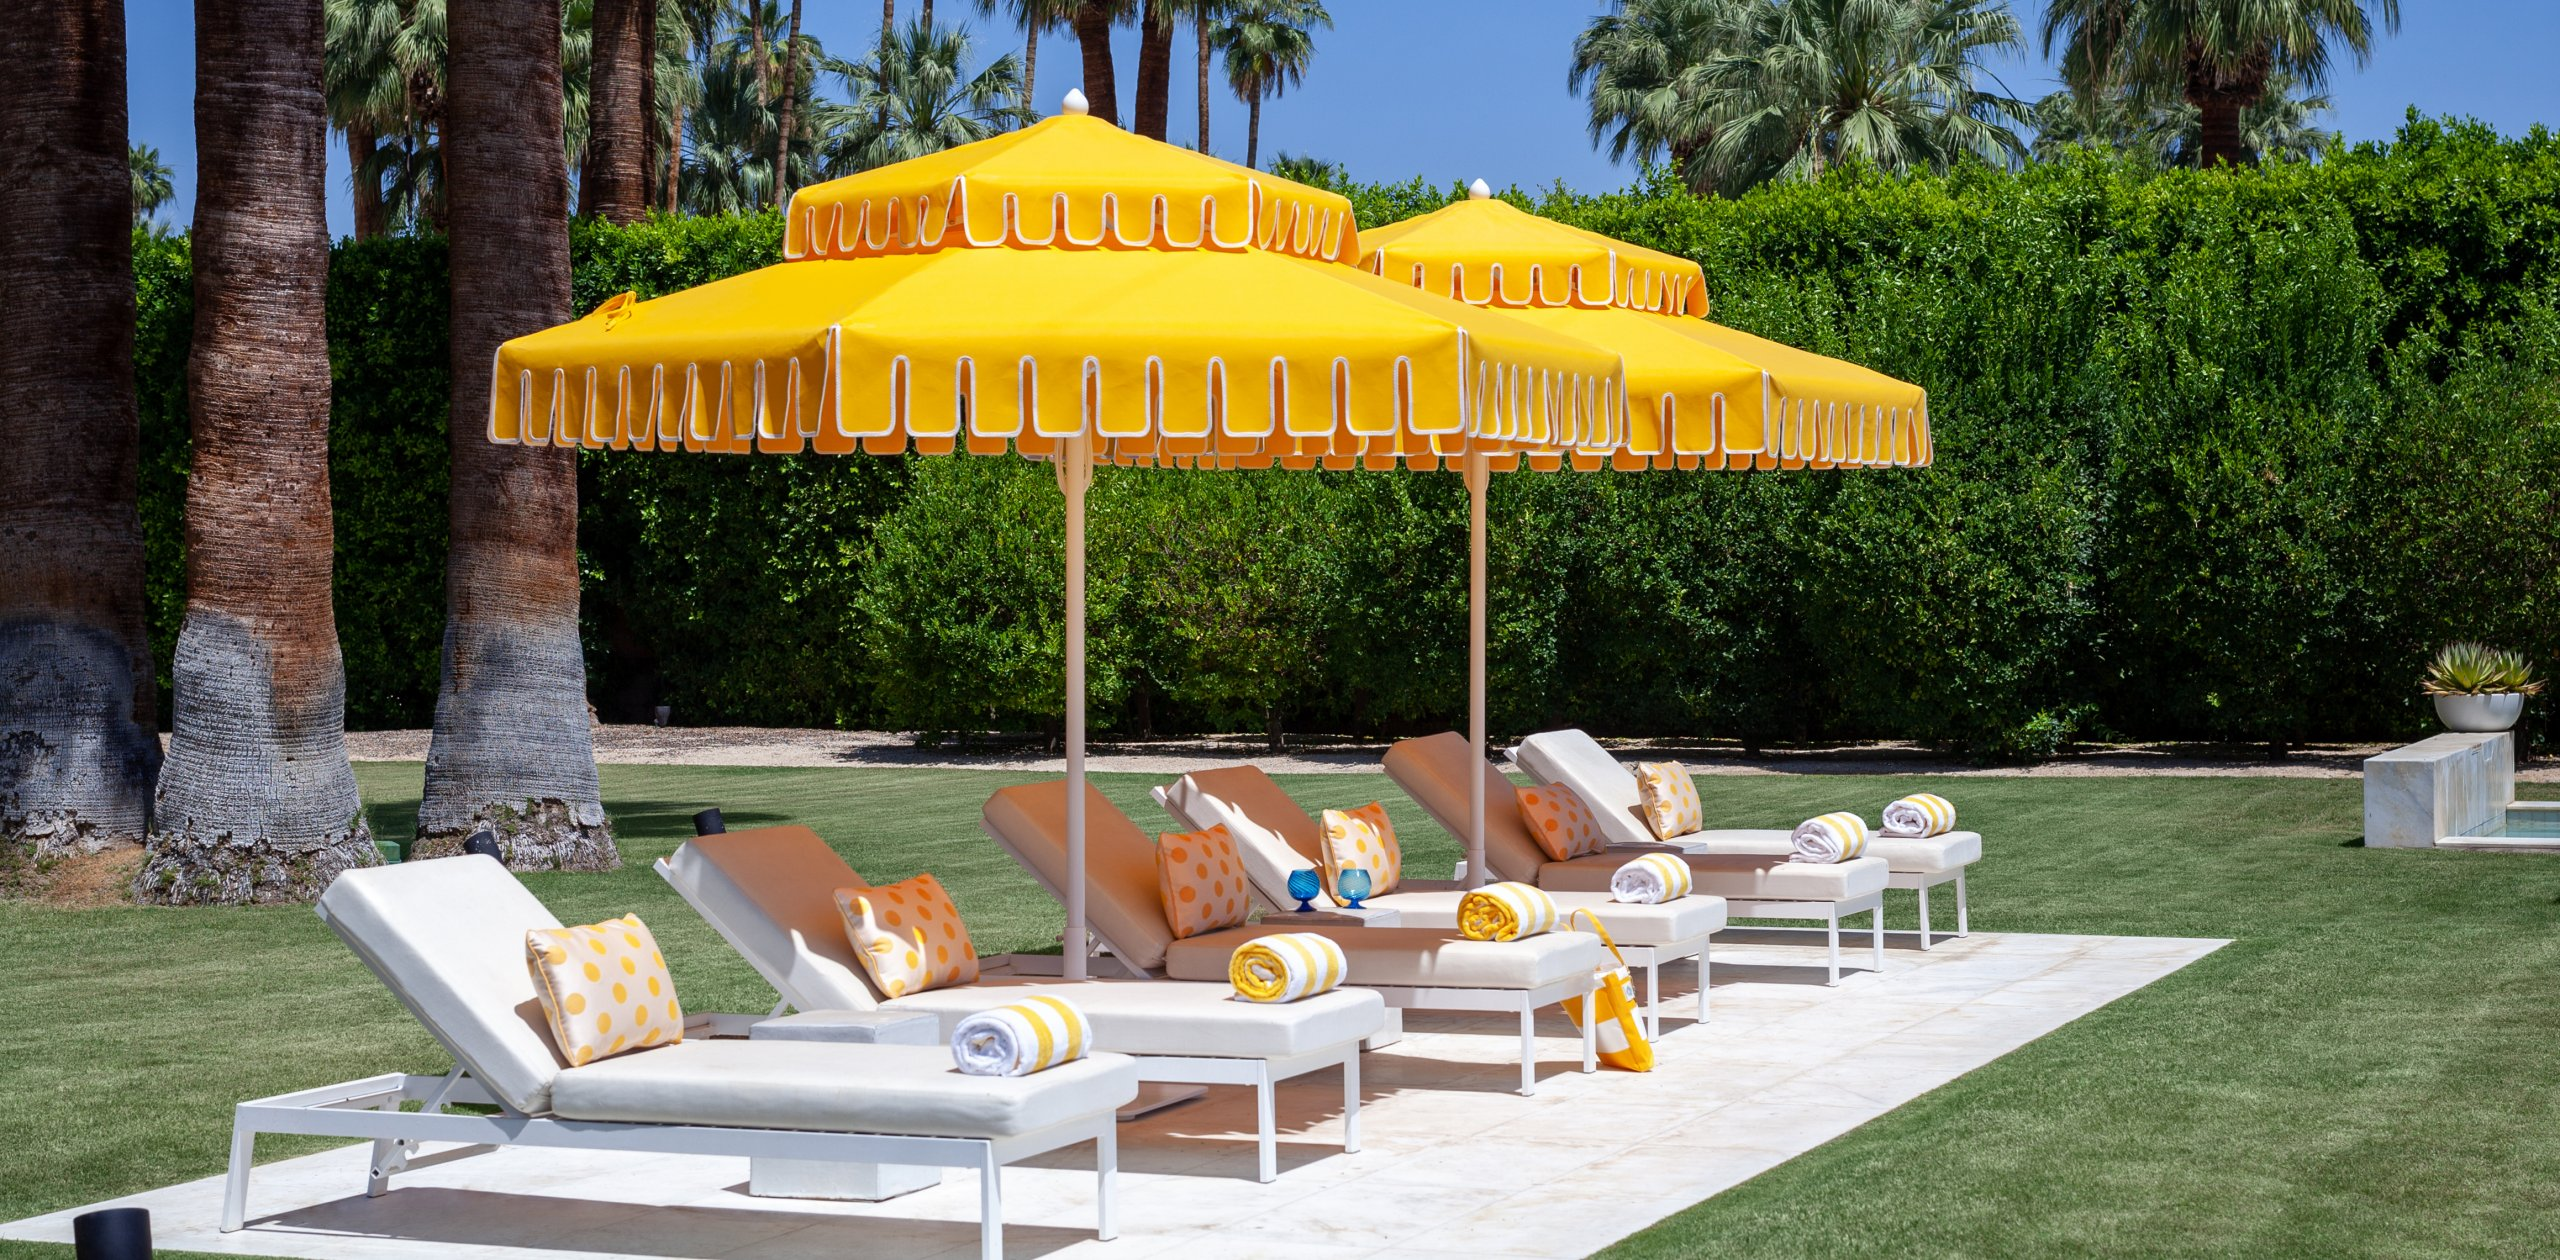 Image of umbrellas and chaises poolside